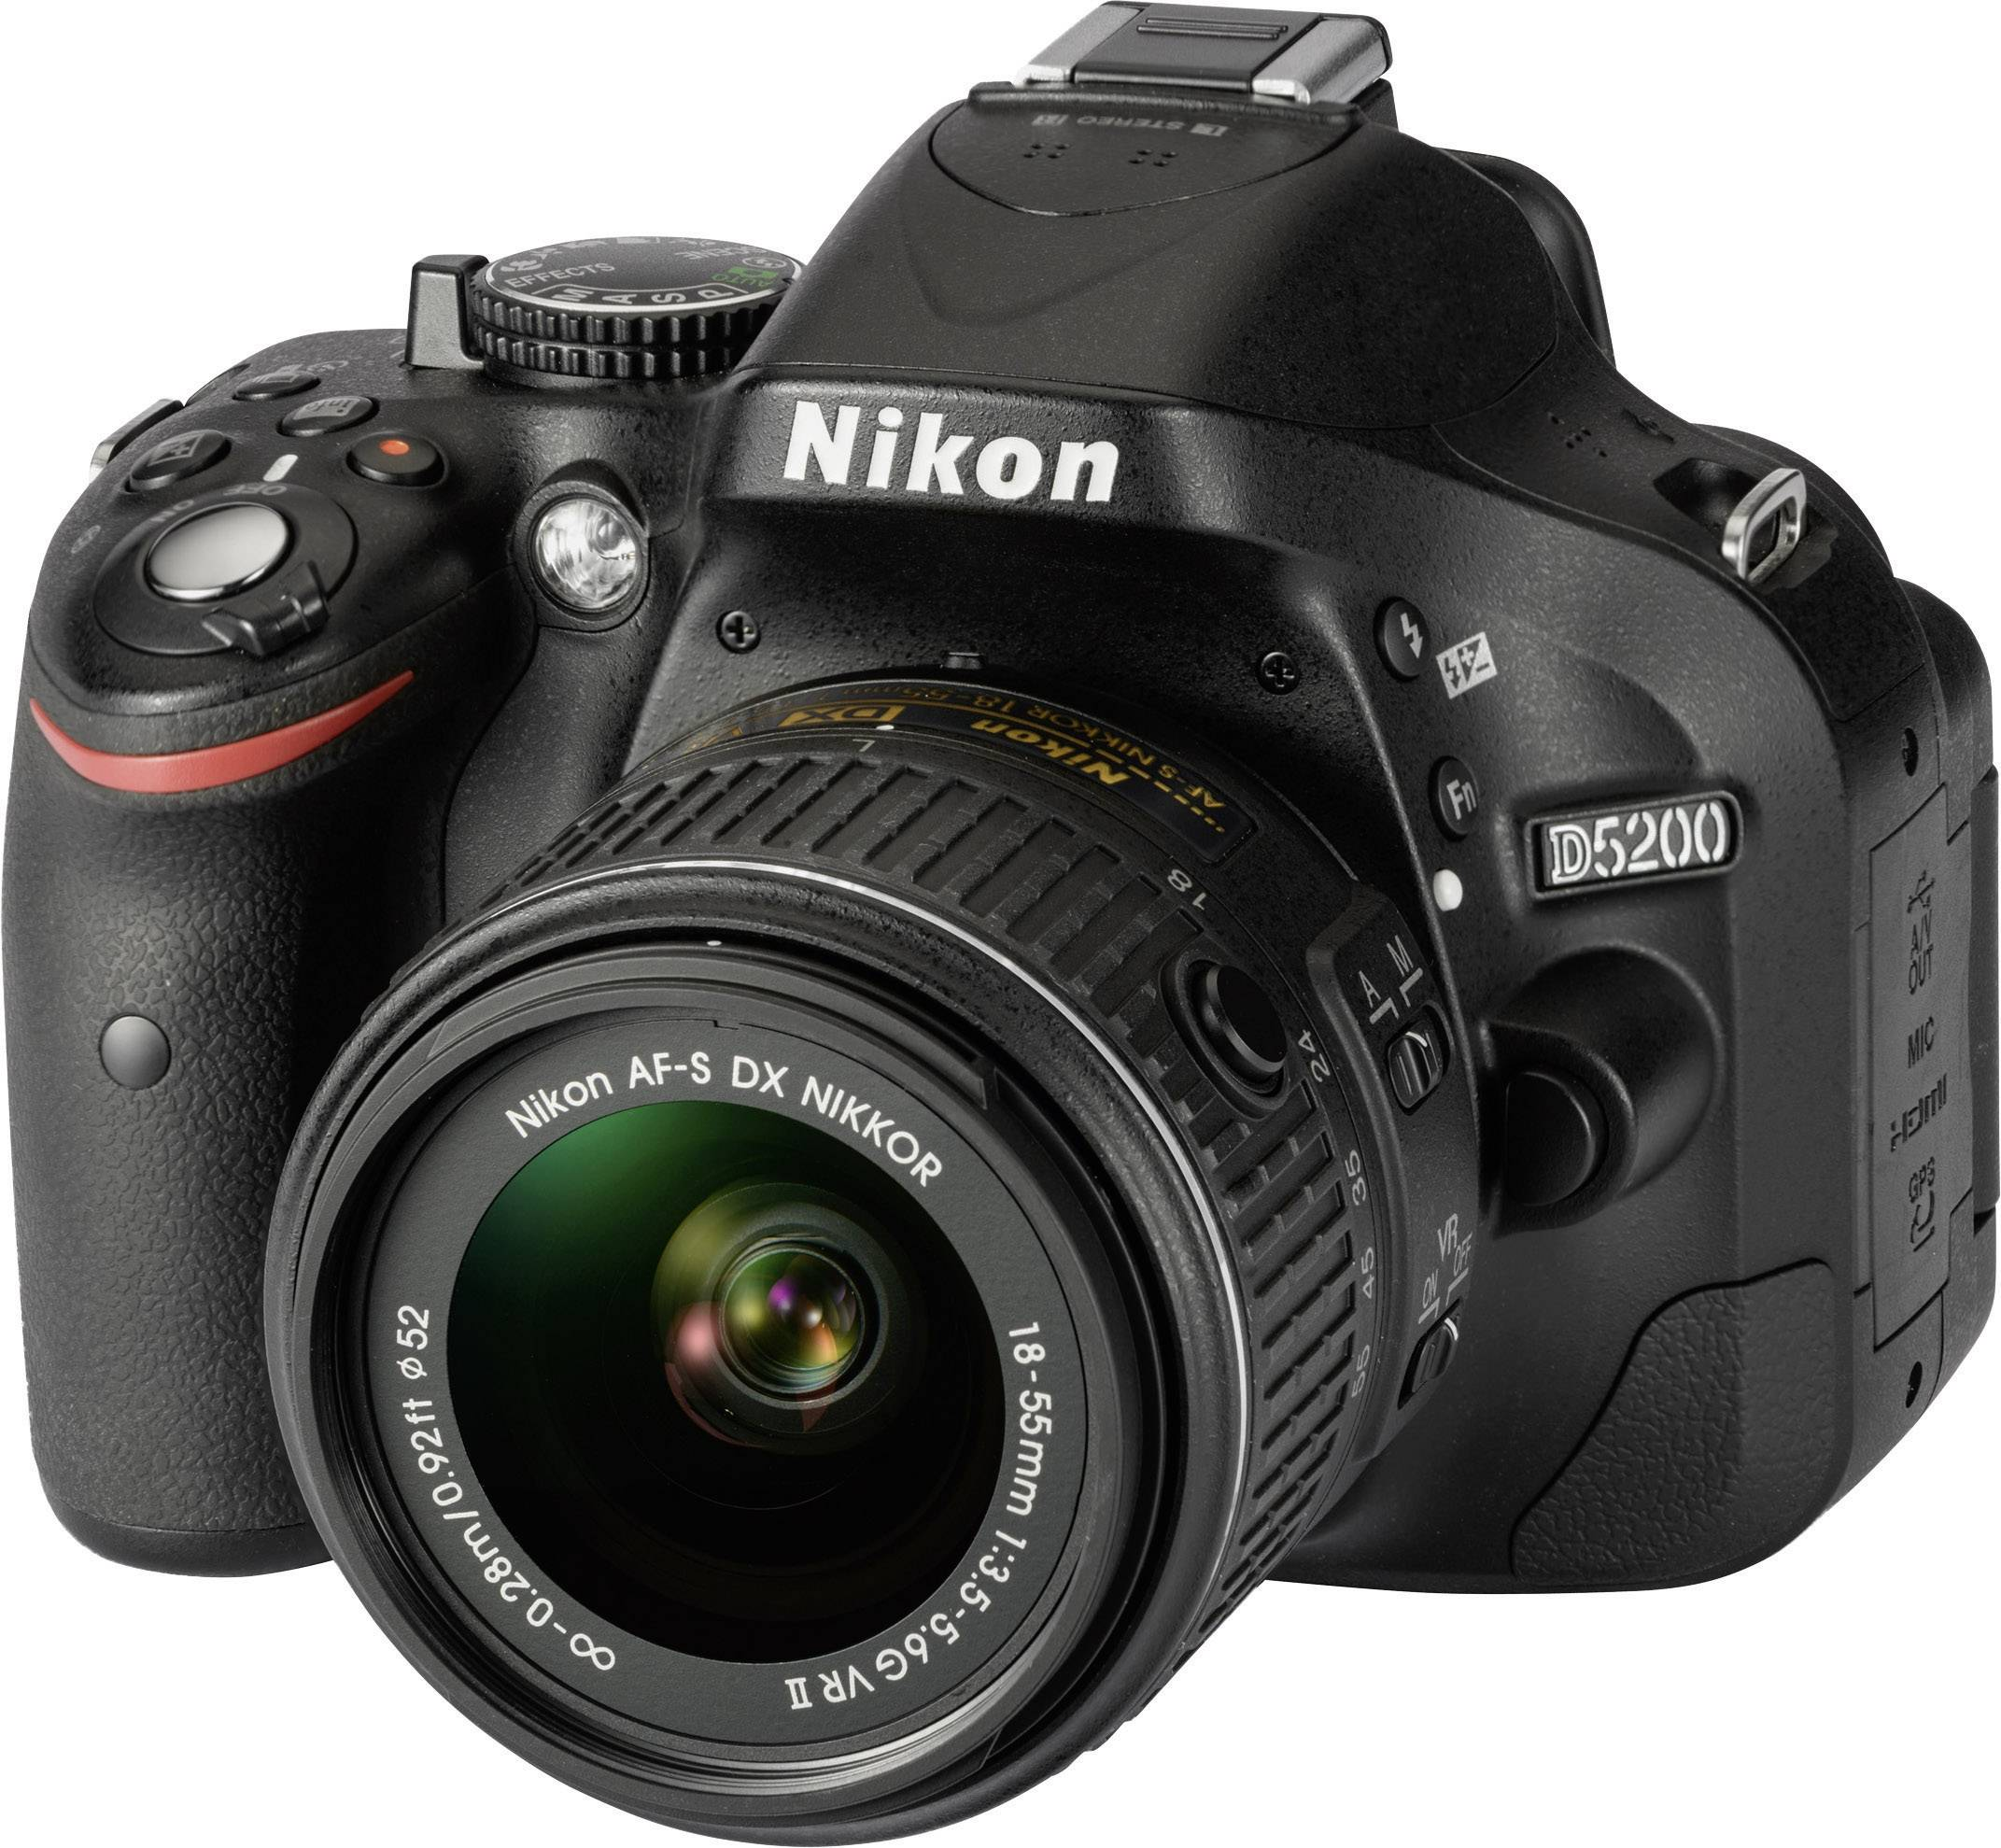 Nikon D5200 18 55 Vr Ii Digitale Spiegelreflexcamera Incl Af S Dx Nikkor 18 55 Mm Vr Ii Lens Zwart Full Hd Video Opn Conrad Nl